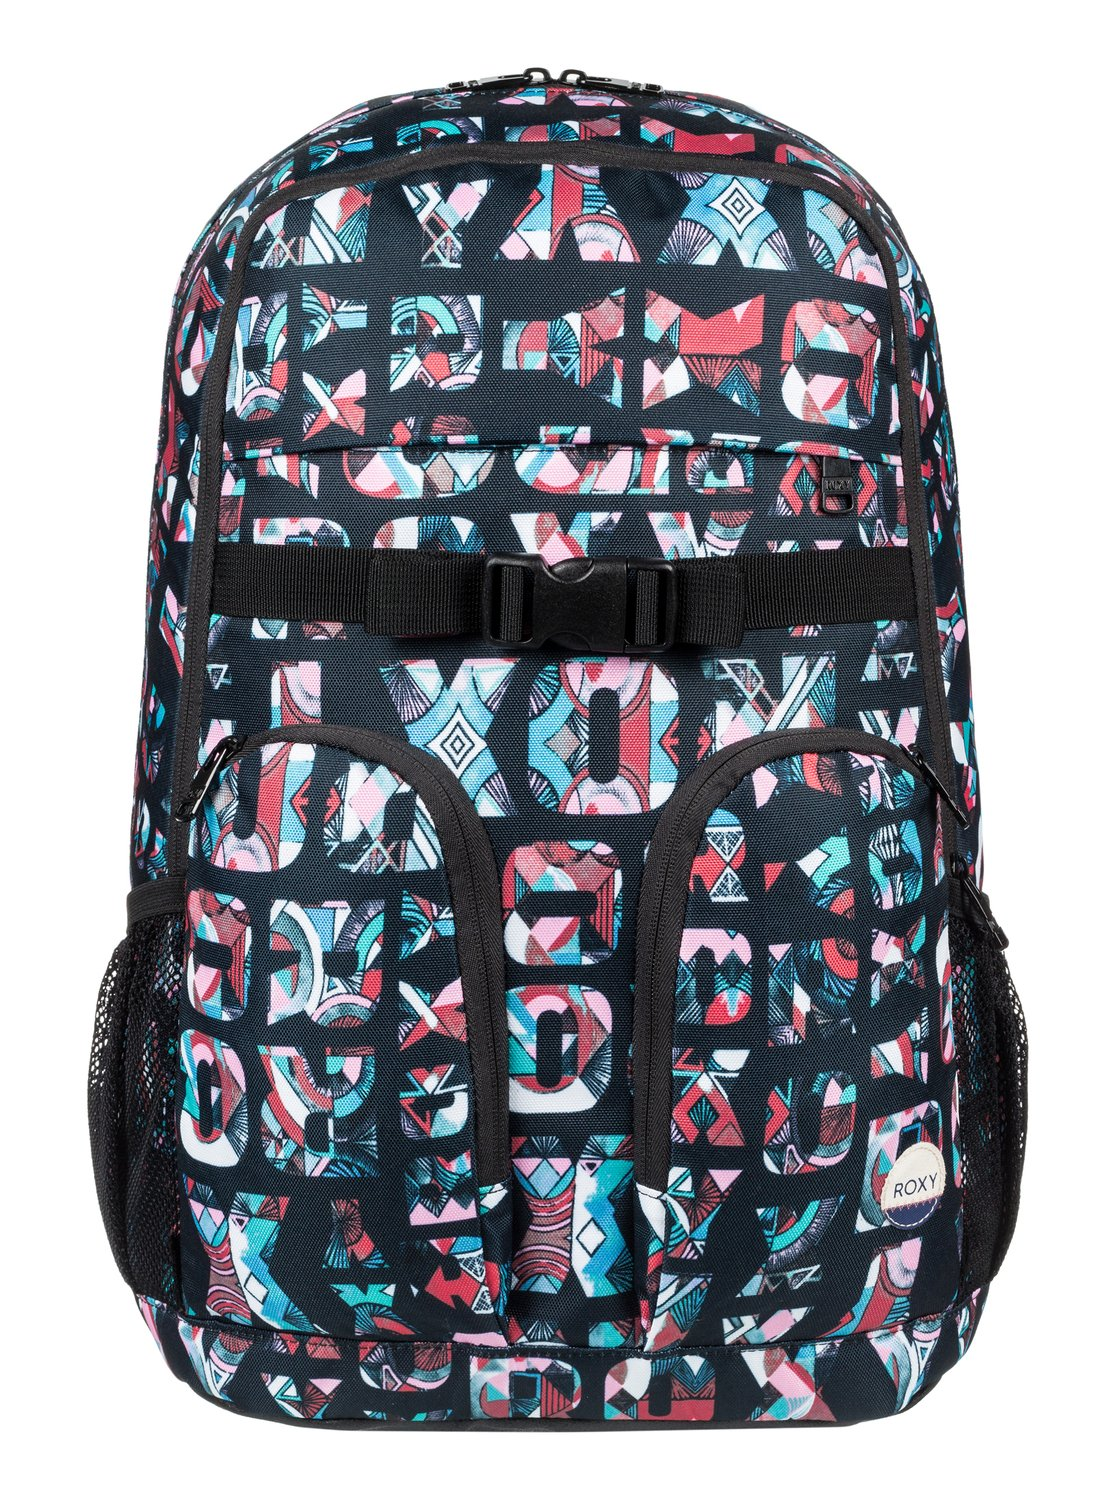 Roxy Sac à dos Take It Slow 7YIXMCxYrC